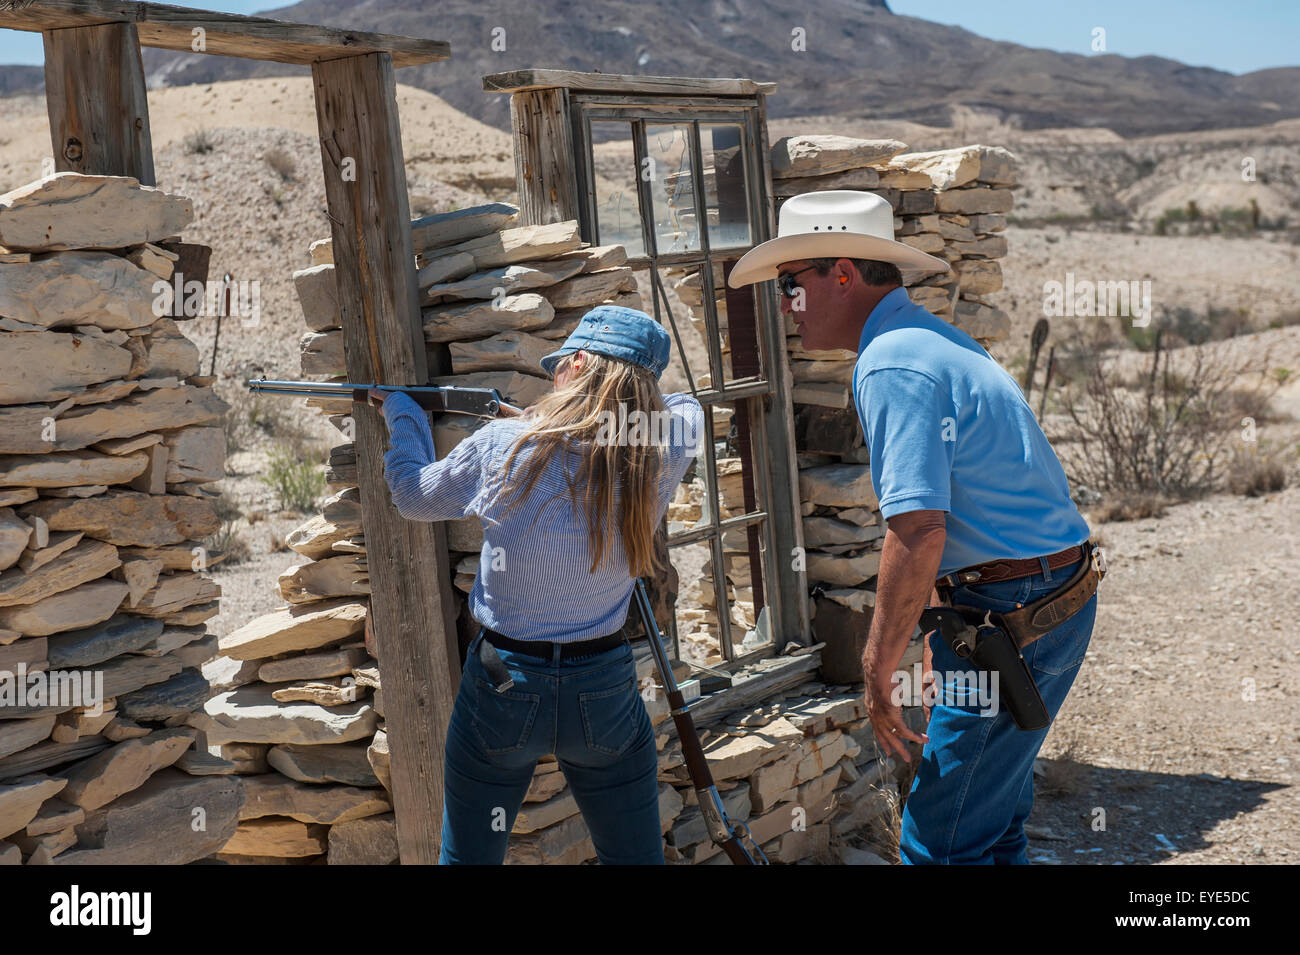 Accuracy,Aiming,America,Arid Climate,Big Bend - Stock Image